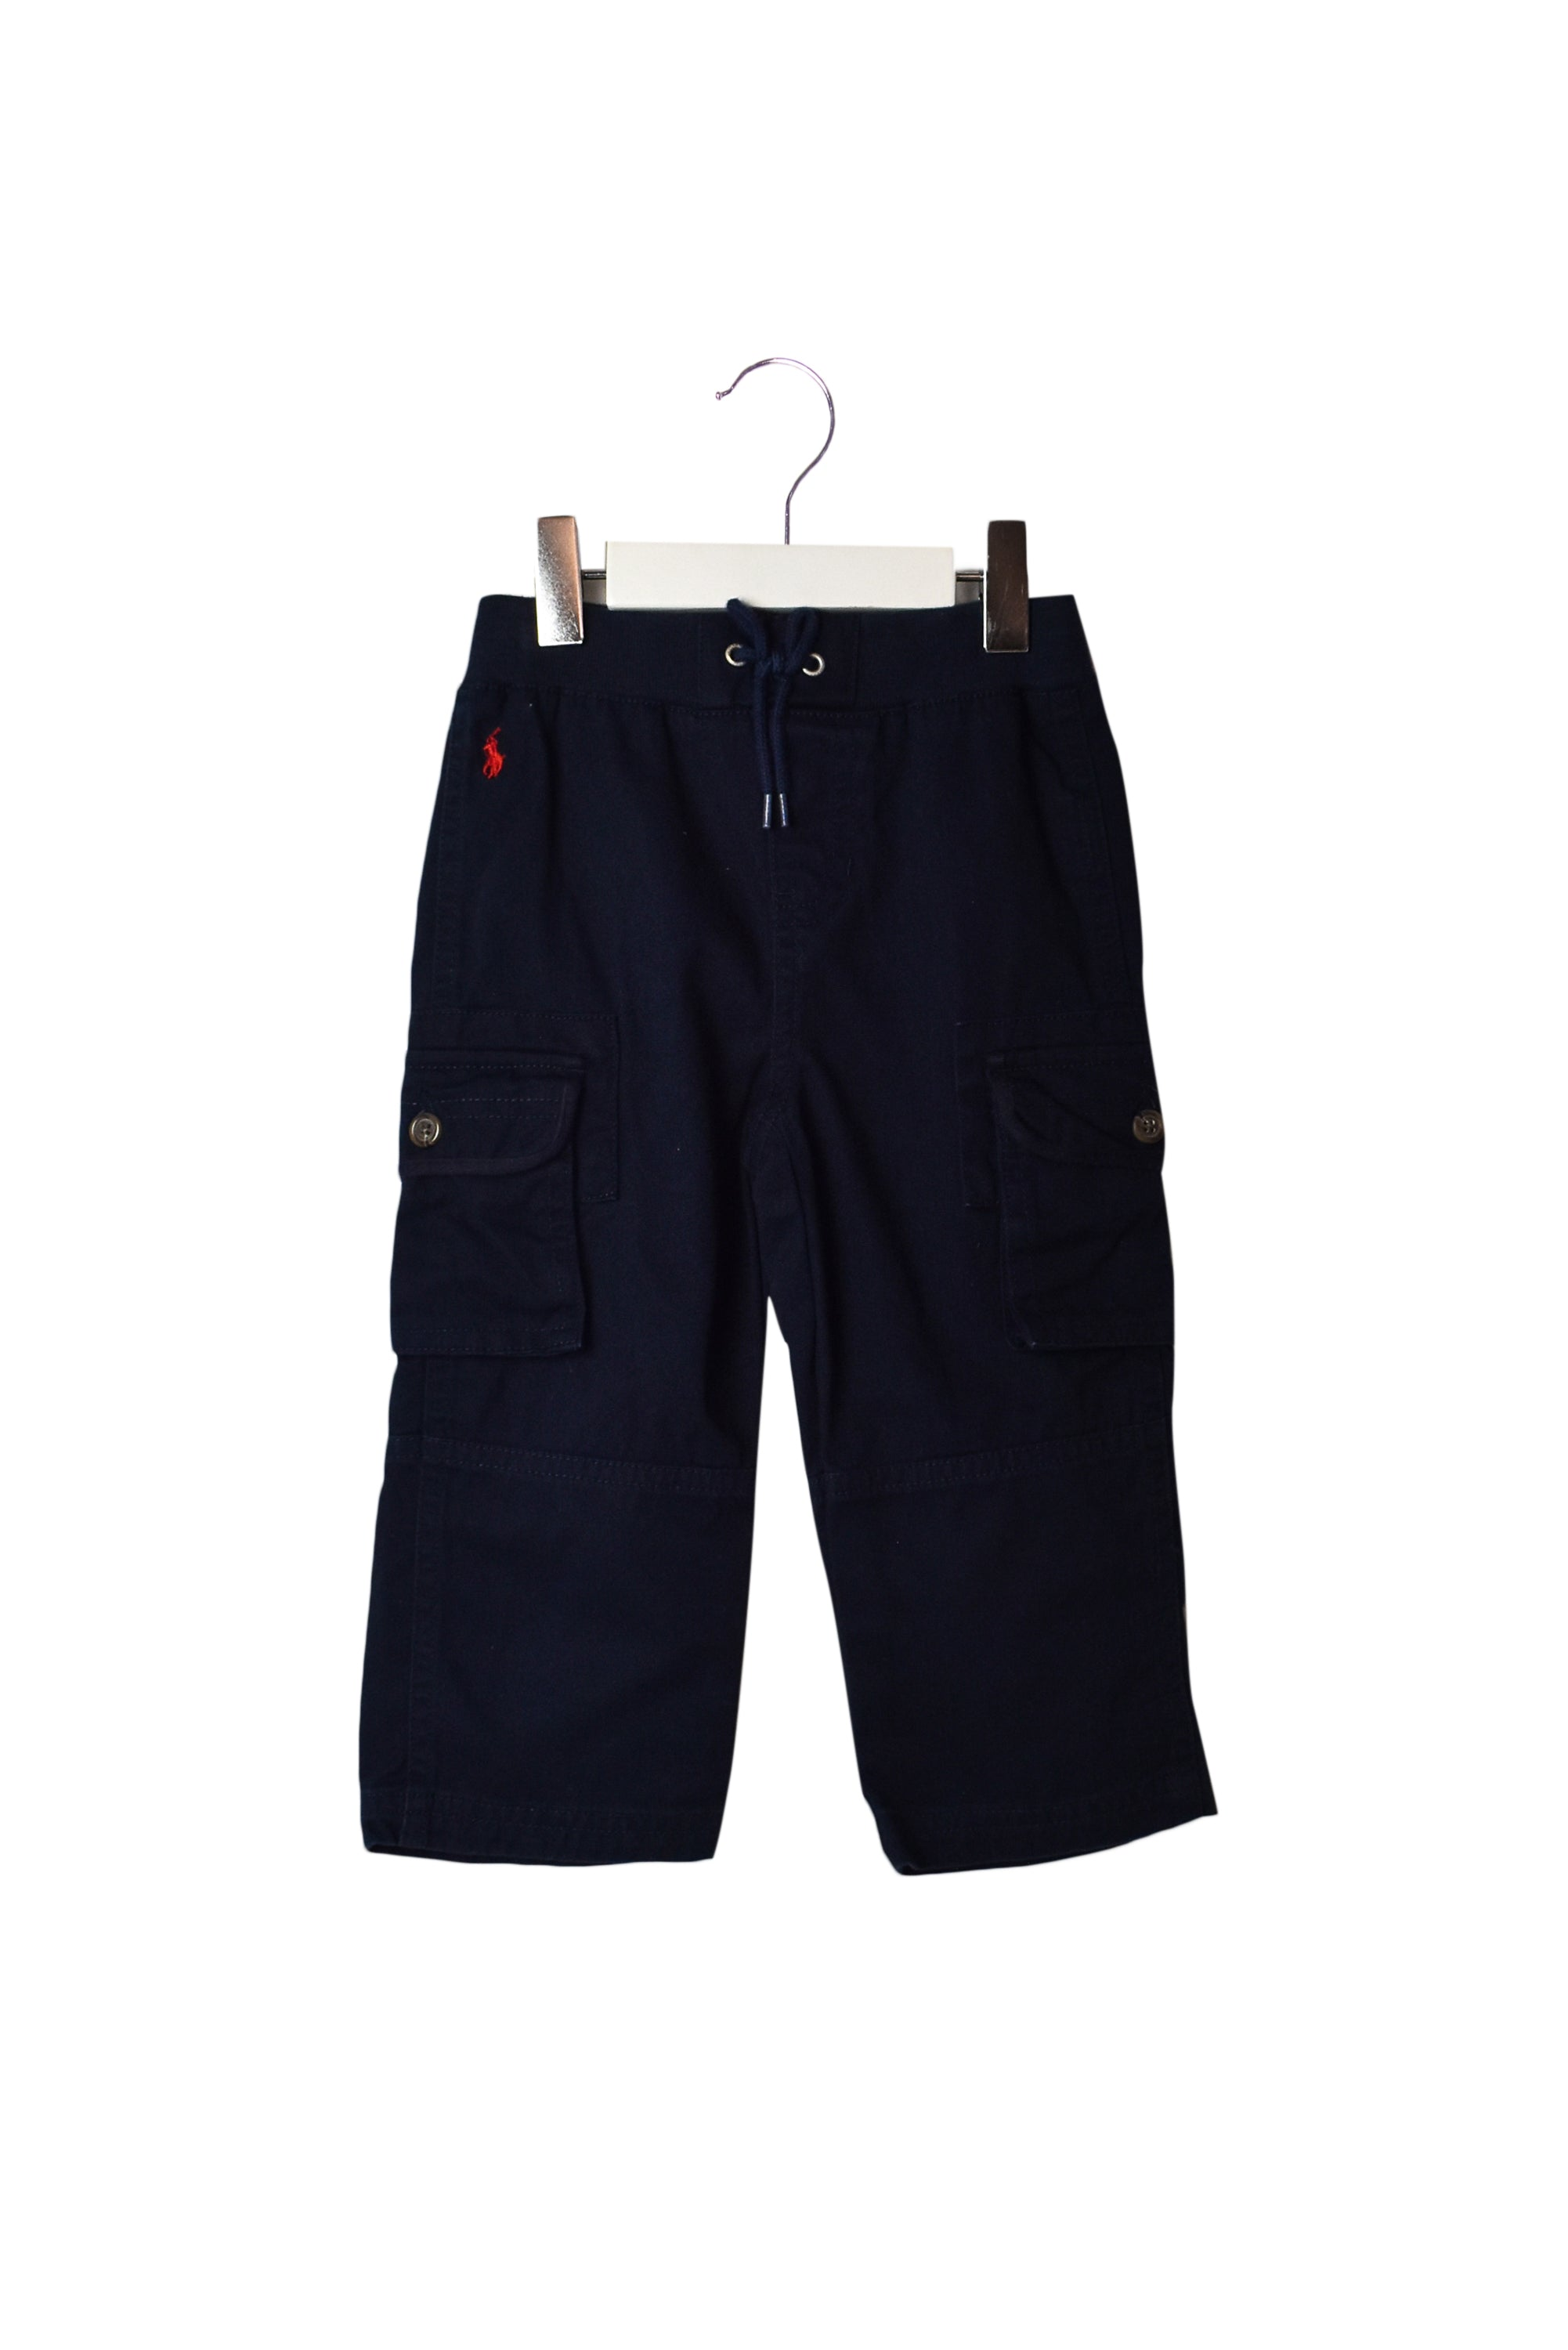 10007081 Polo Ralph Lauren Baby ~ Pants 18M at Retykle